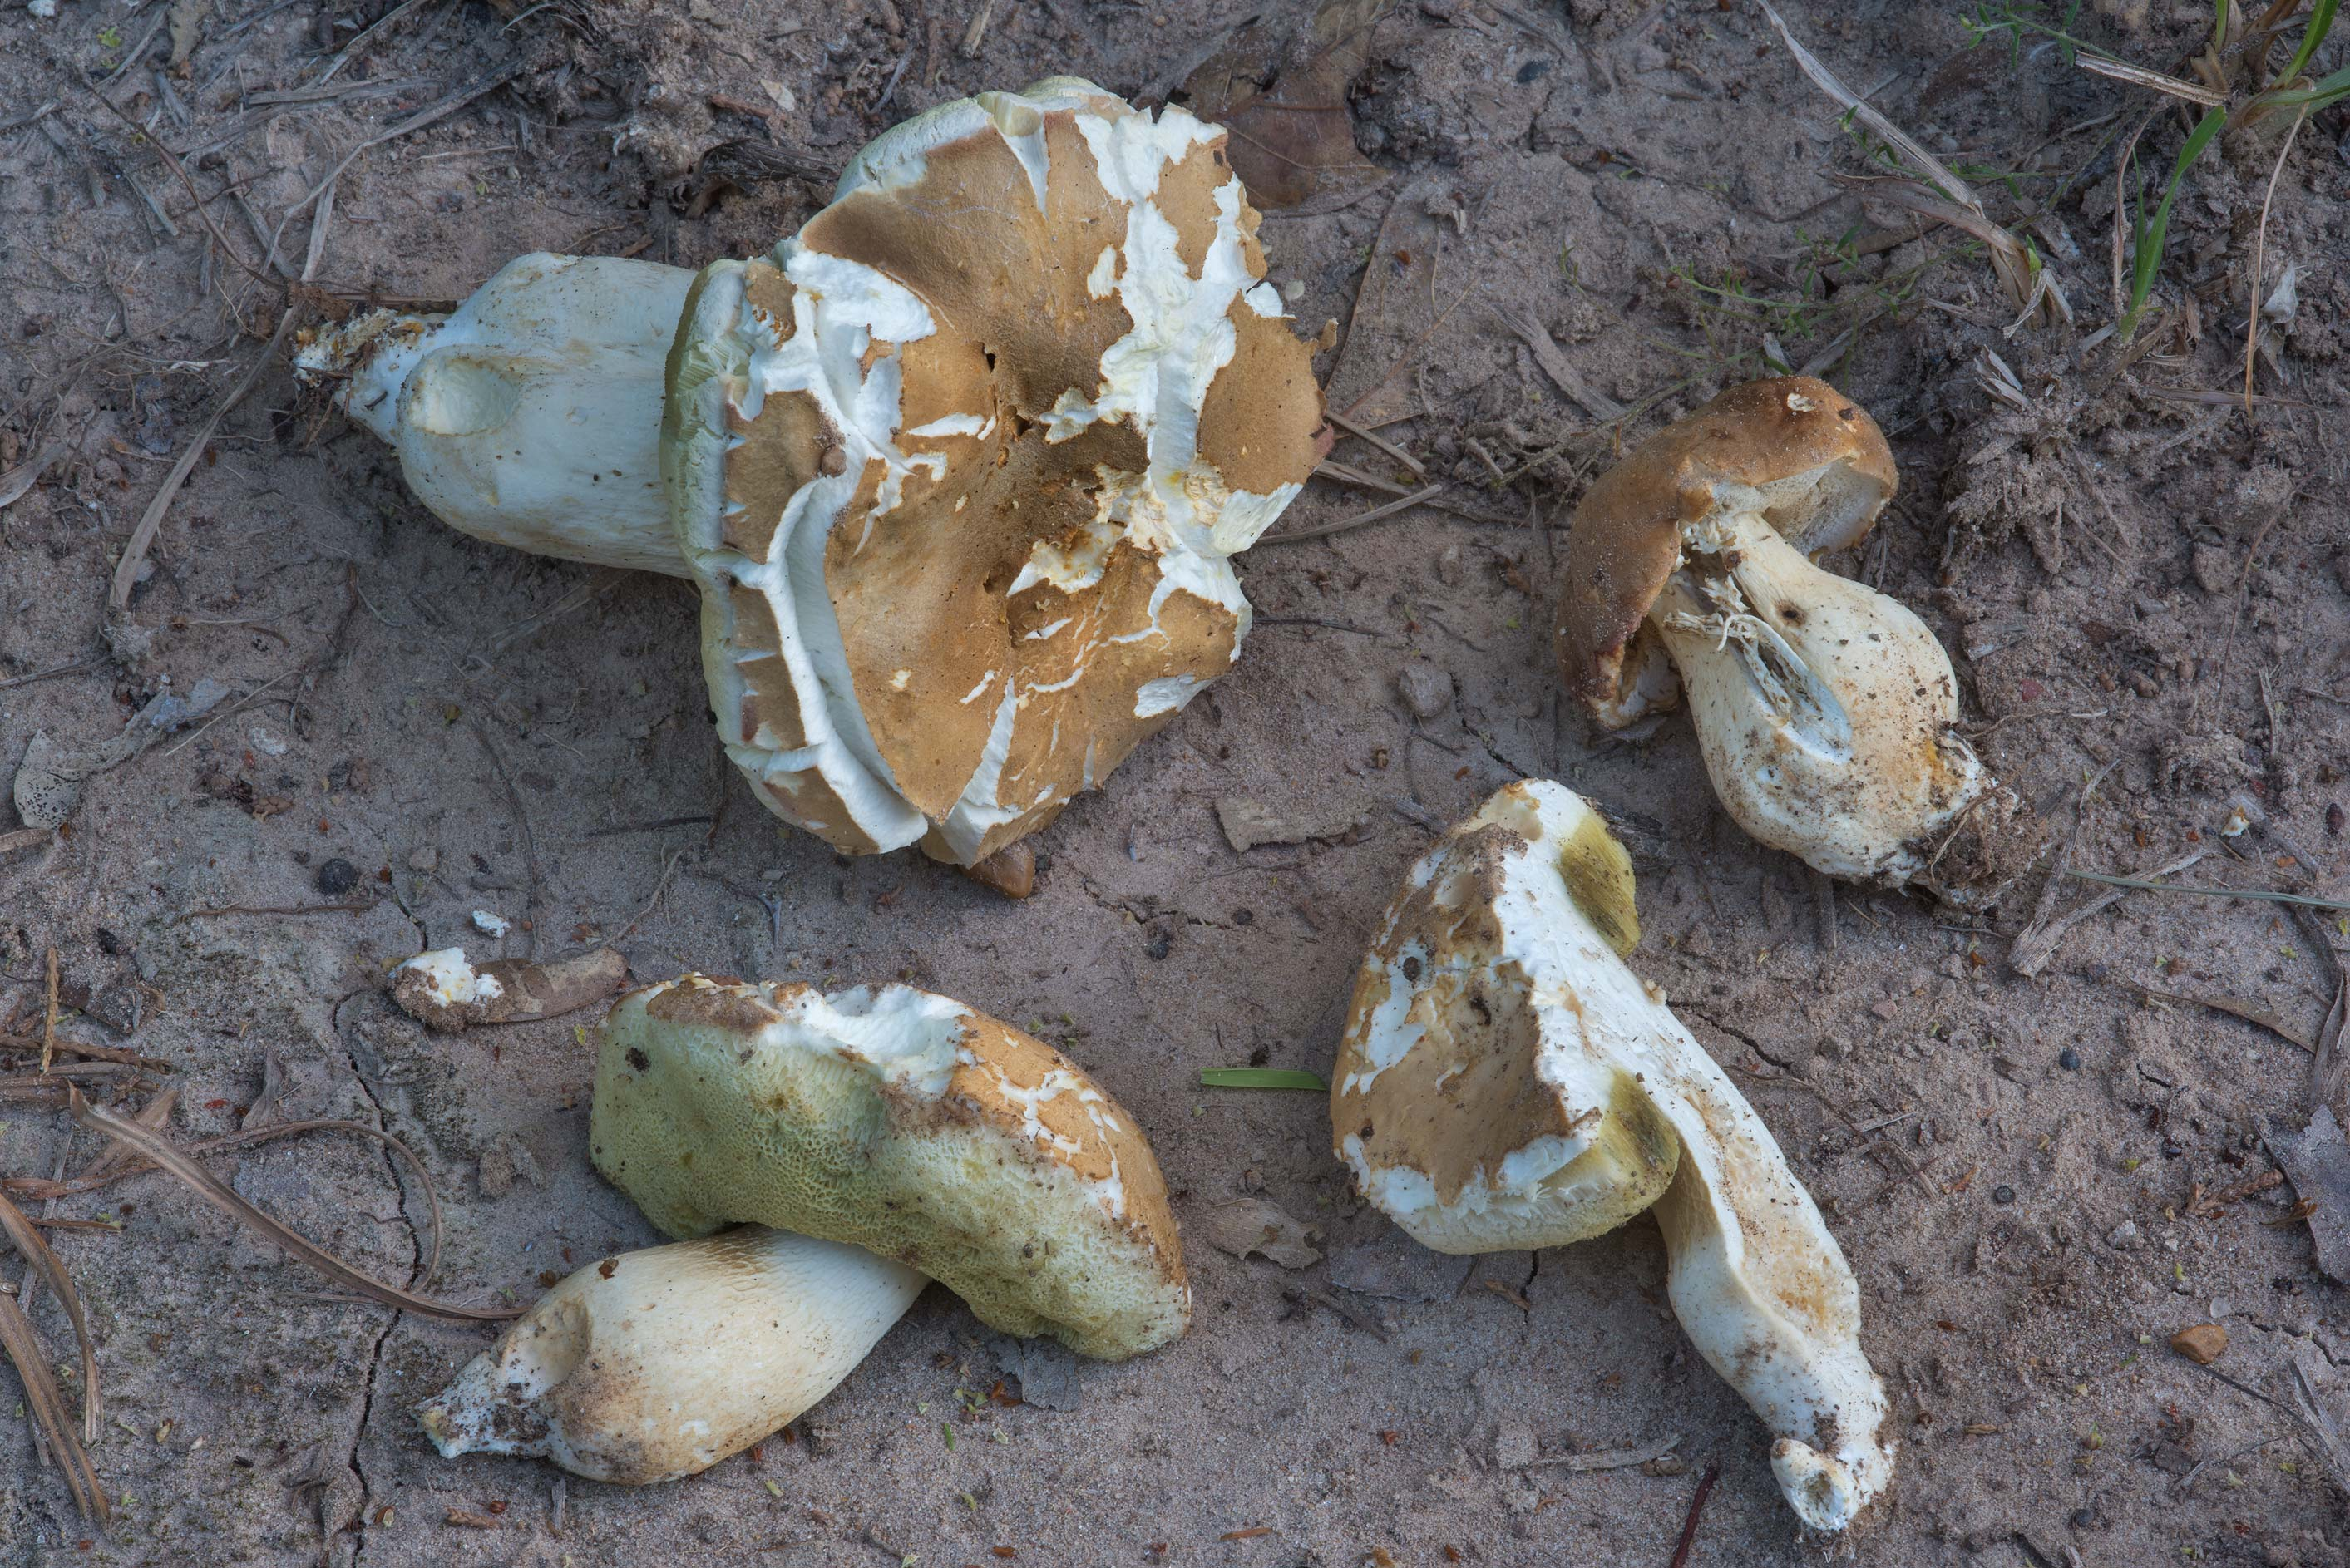 Group of porcini bolete mushrooms (Boletus edulis...Creek Park. College Station, Texas